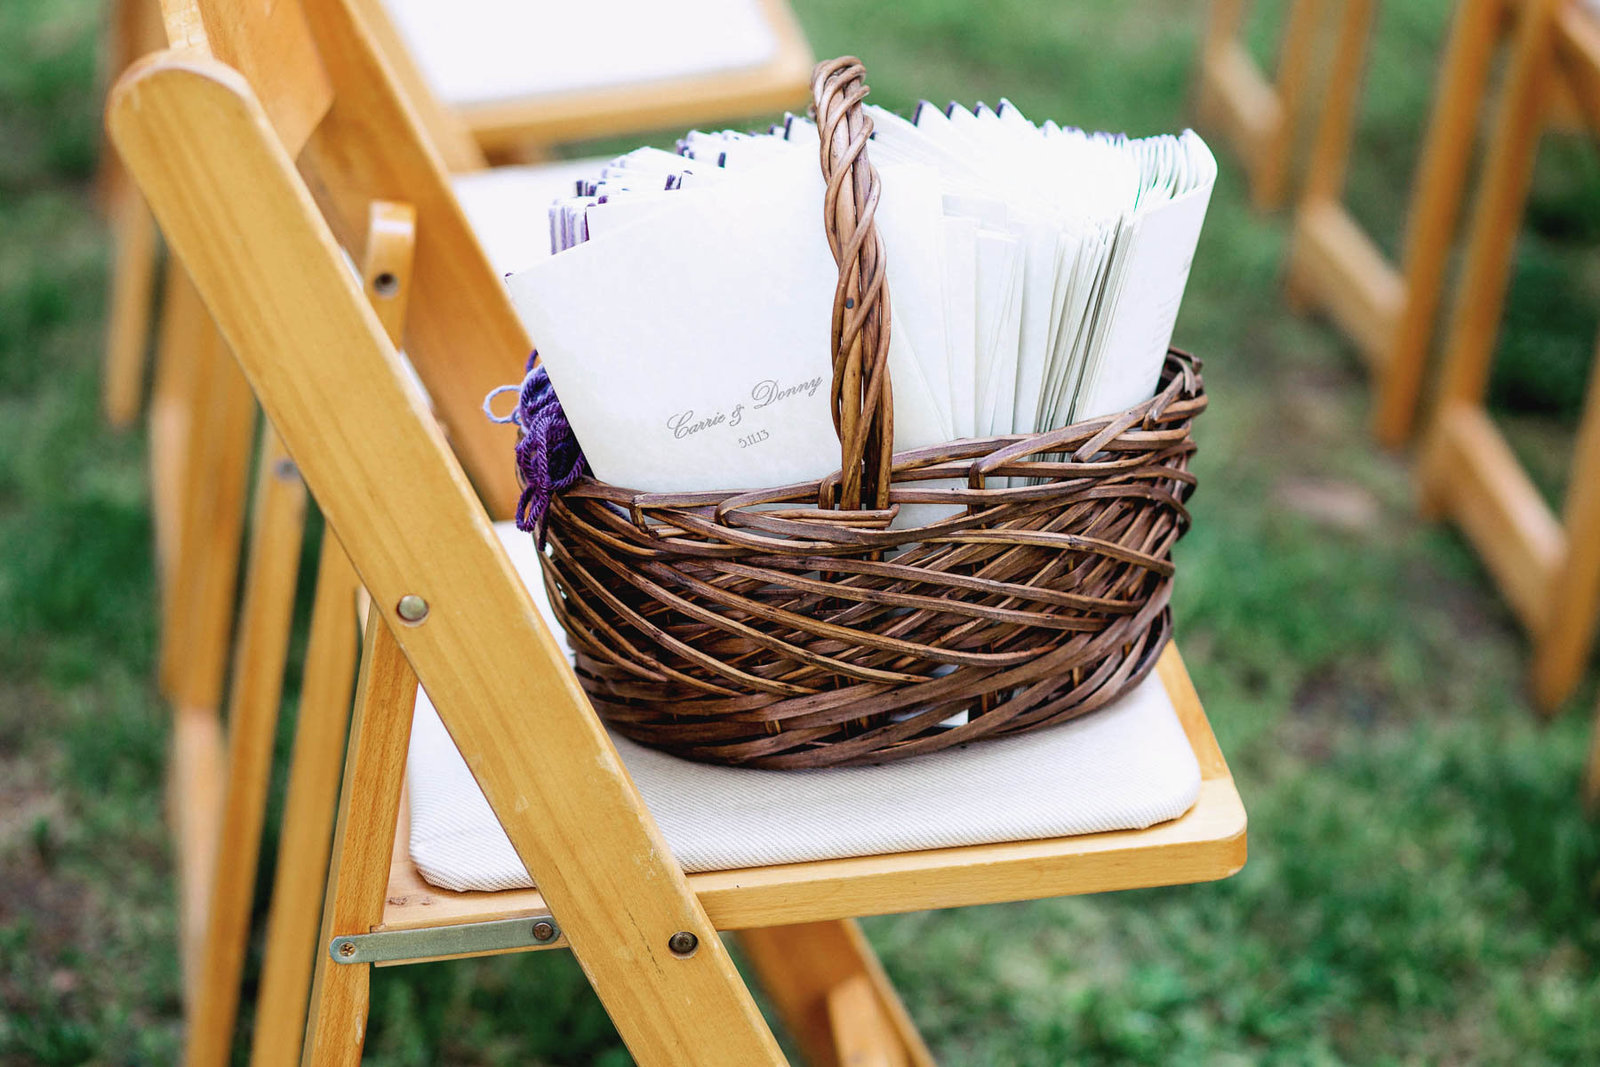 Programs are stacked in a basket, Lewes Historical Society, Delaware. Kate Timbers Photography.